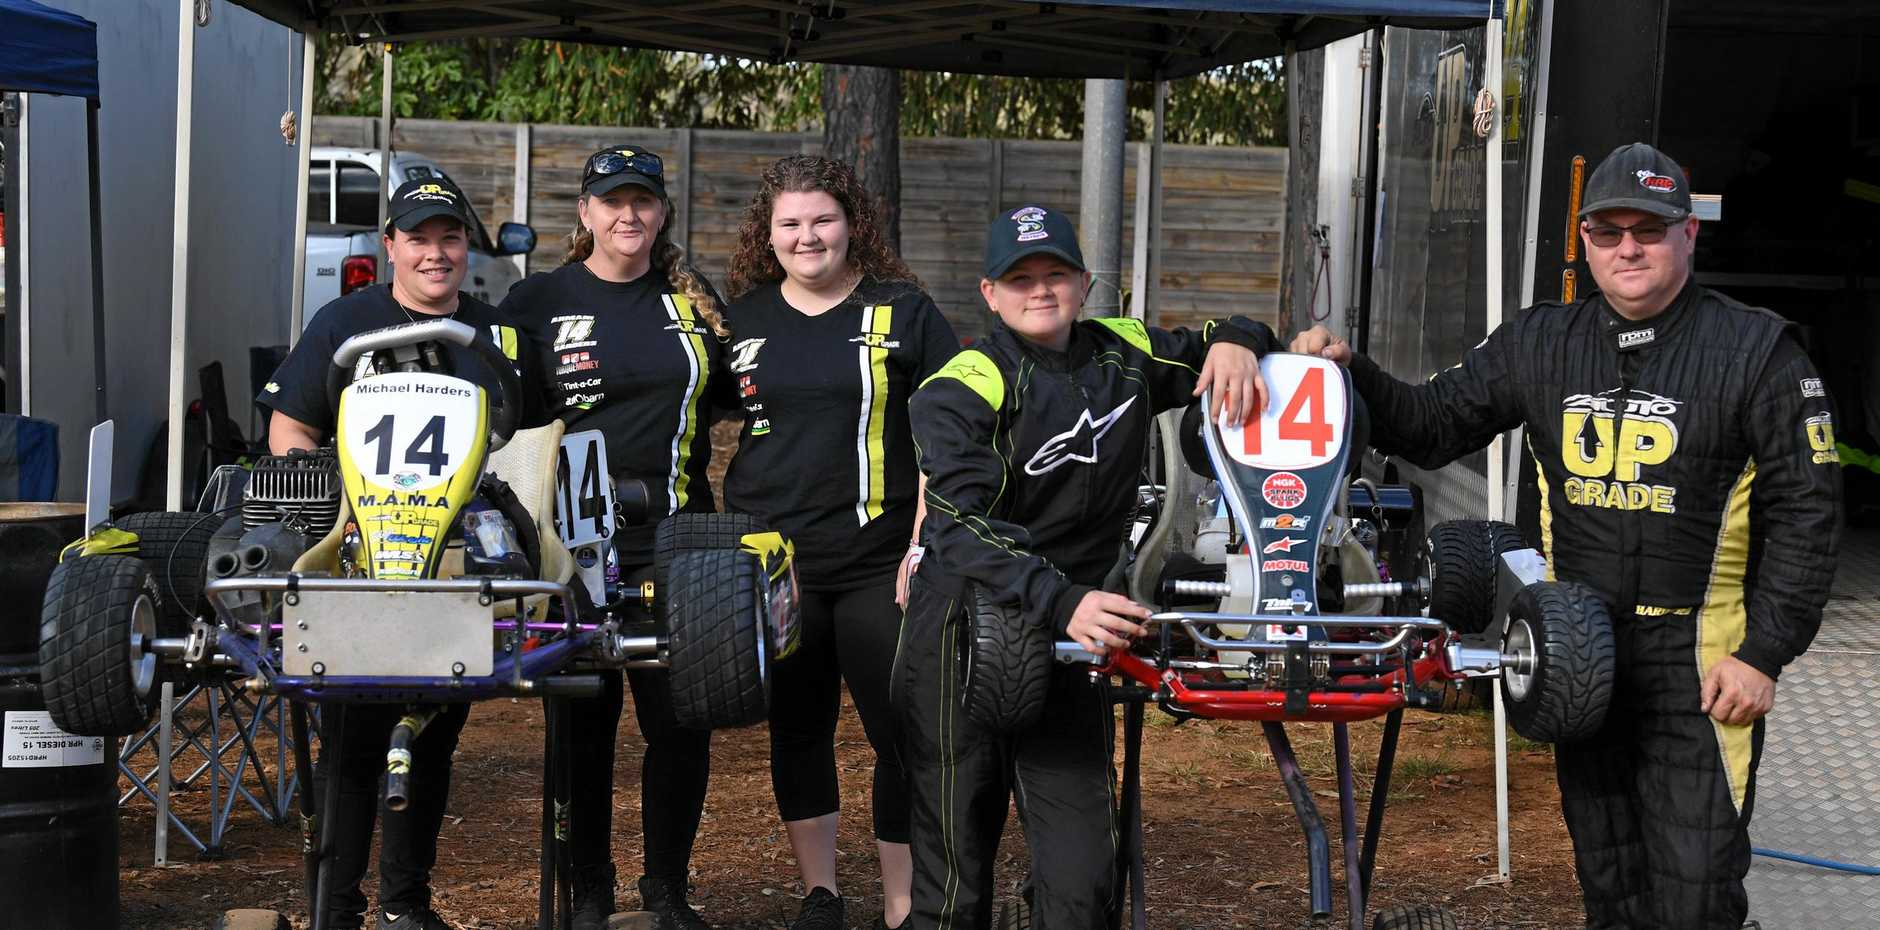 Back: Natalie Wright, Angie Harders, Mackayla Harders supporting Armani and Michael Harders at the karts in Maryborough.